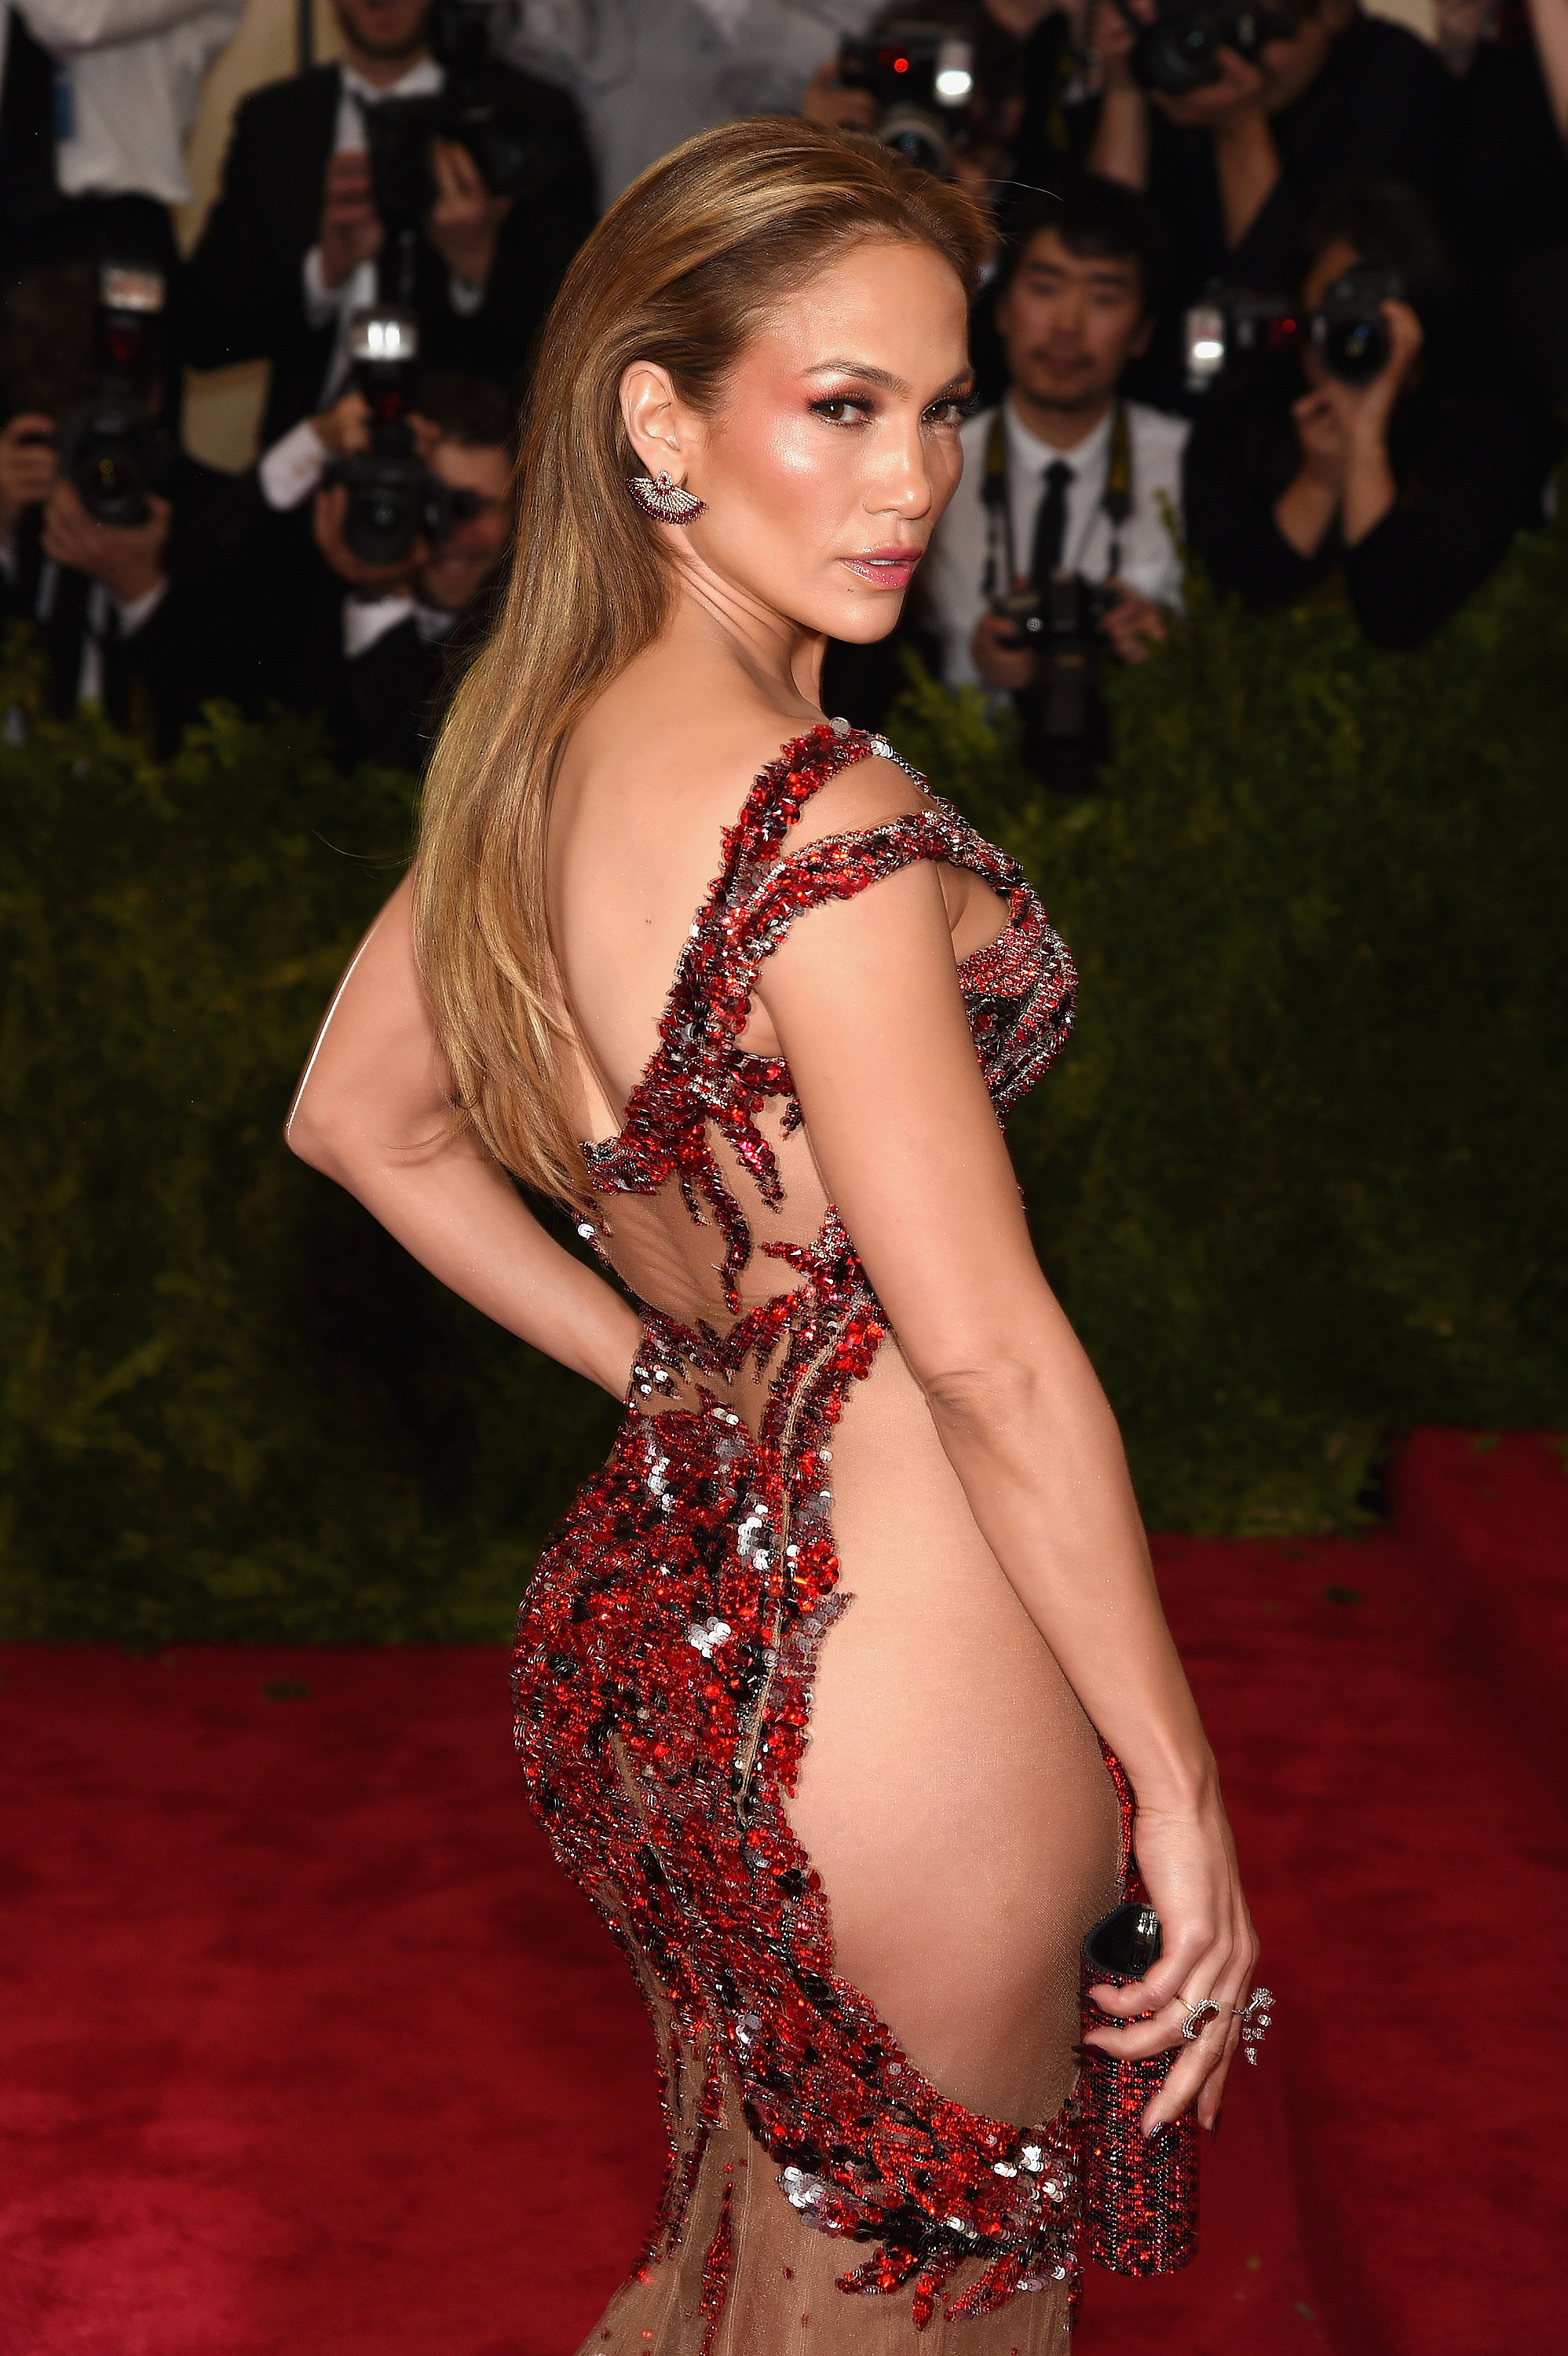 J. Lo and Tracy Anderson train together